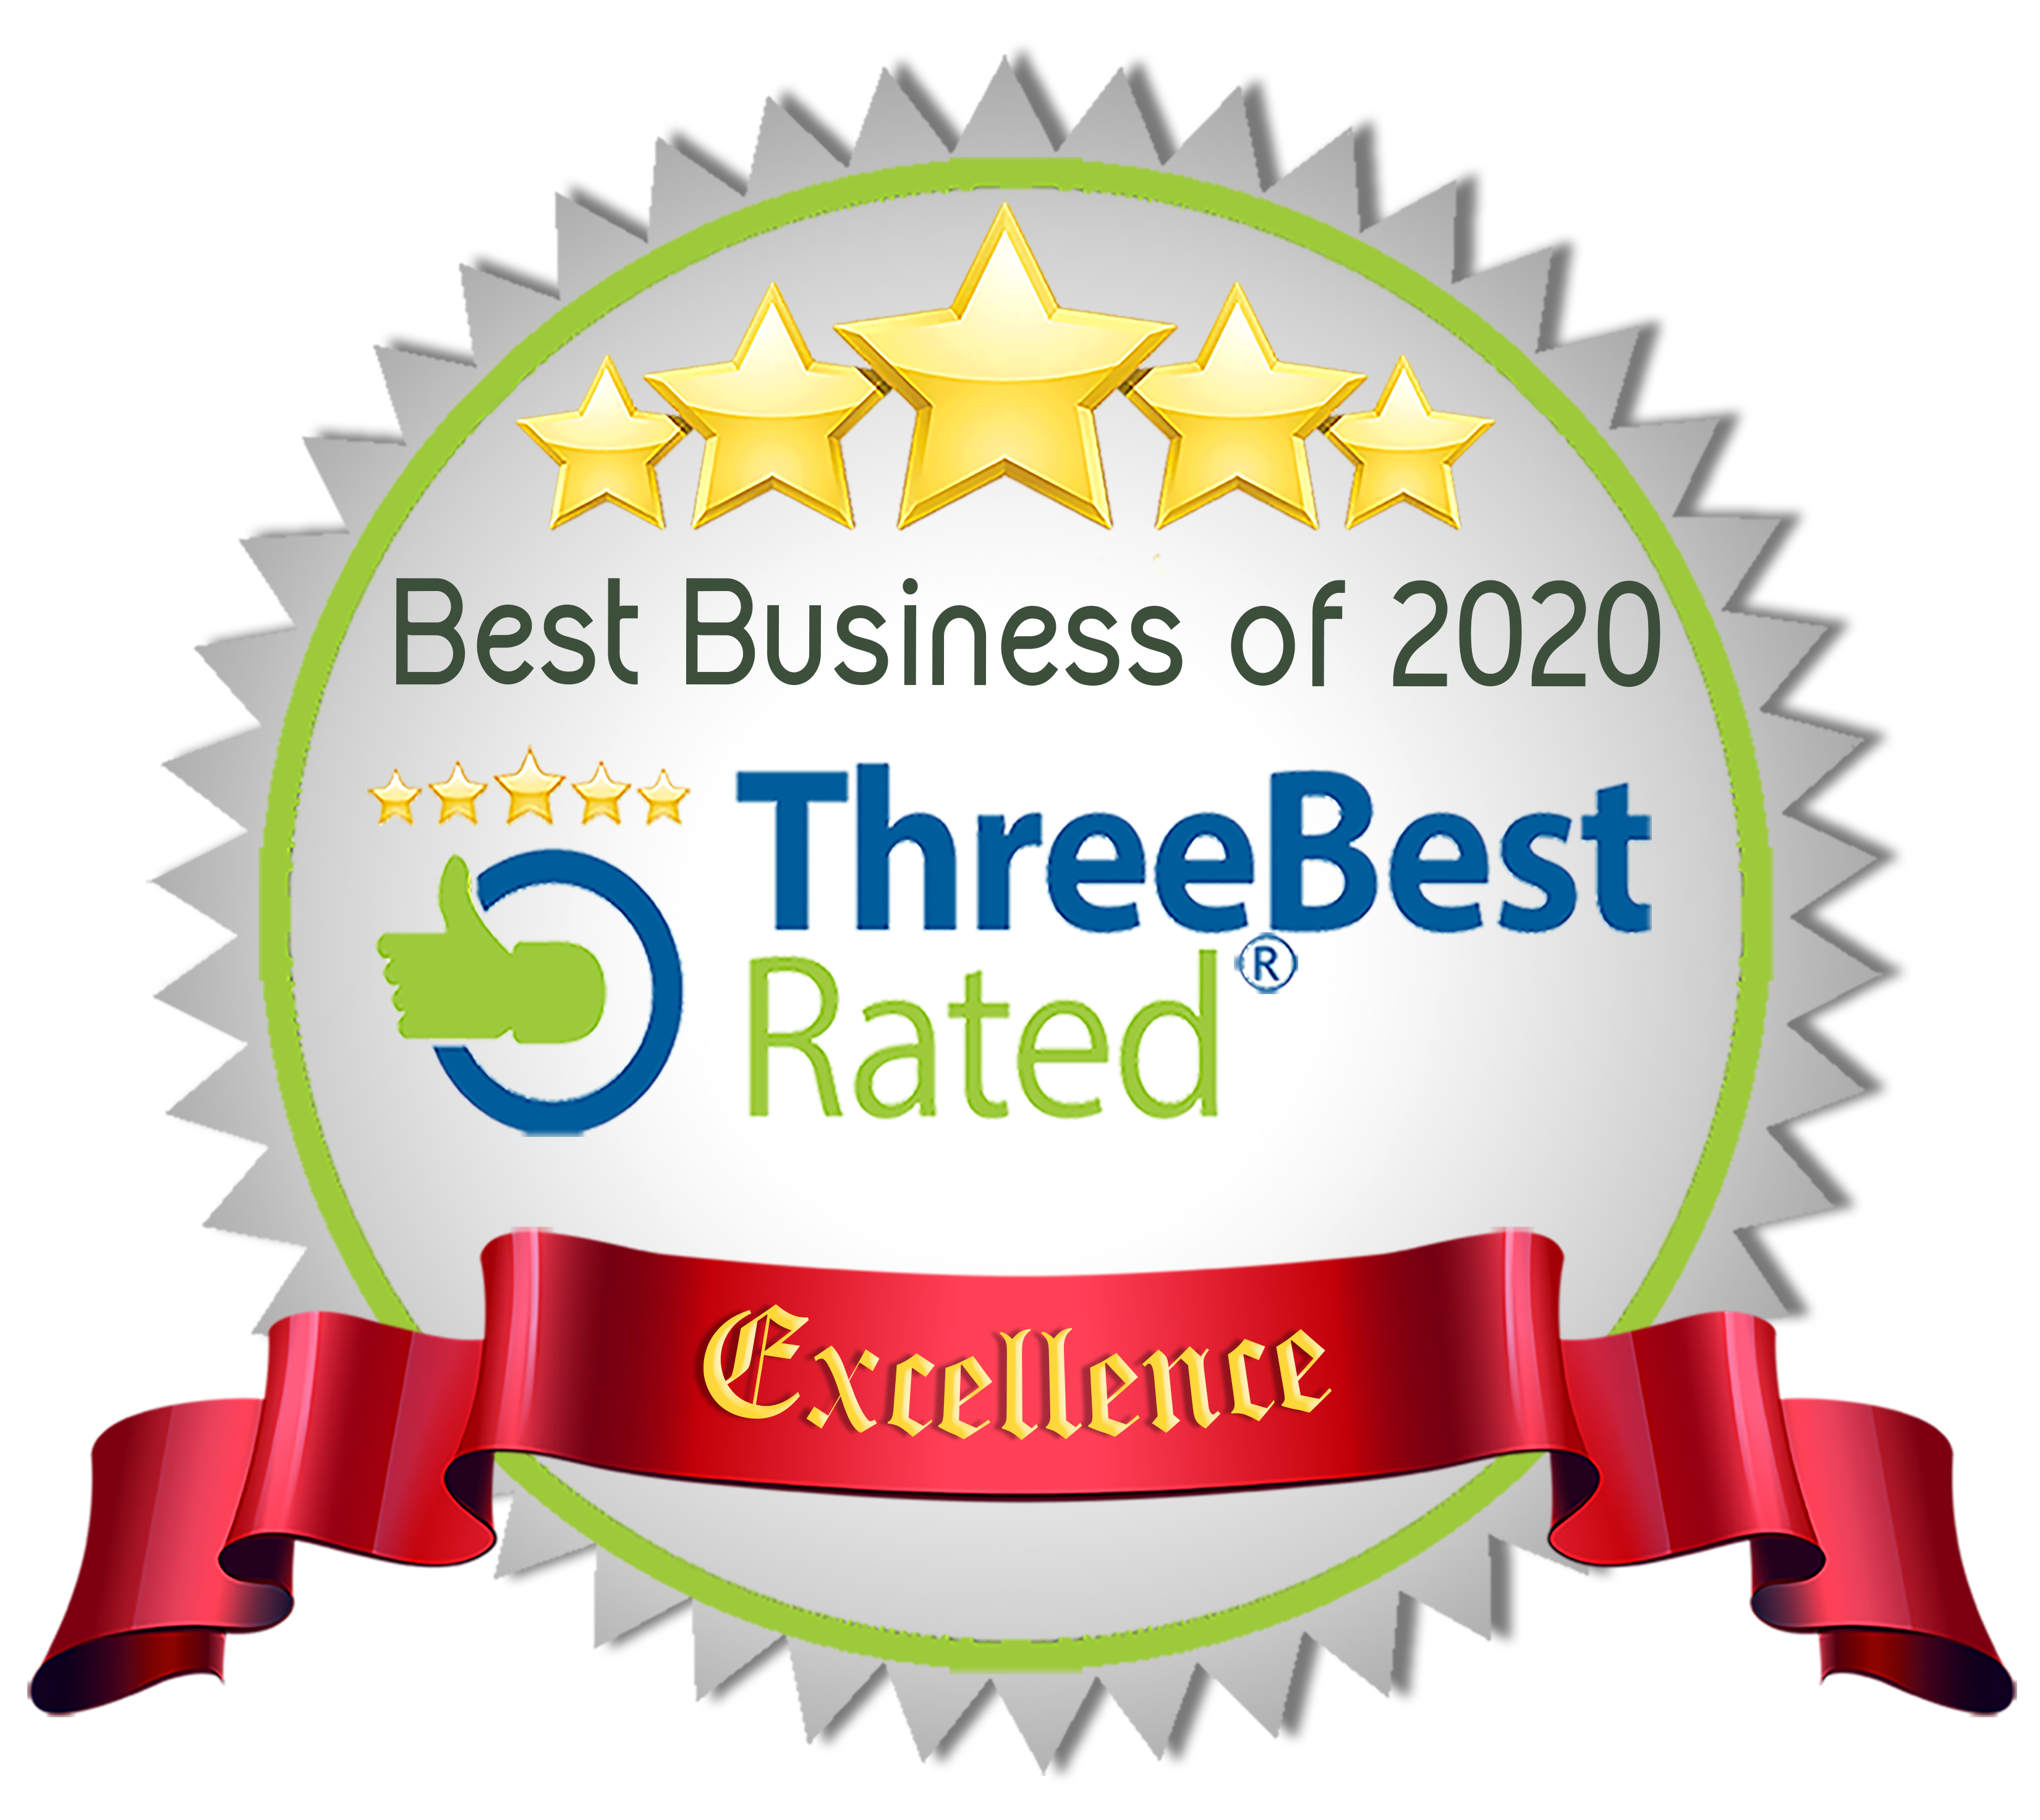 Best business of 2020 Three Best rated